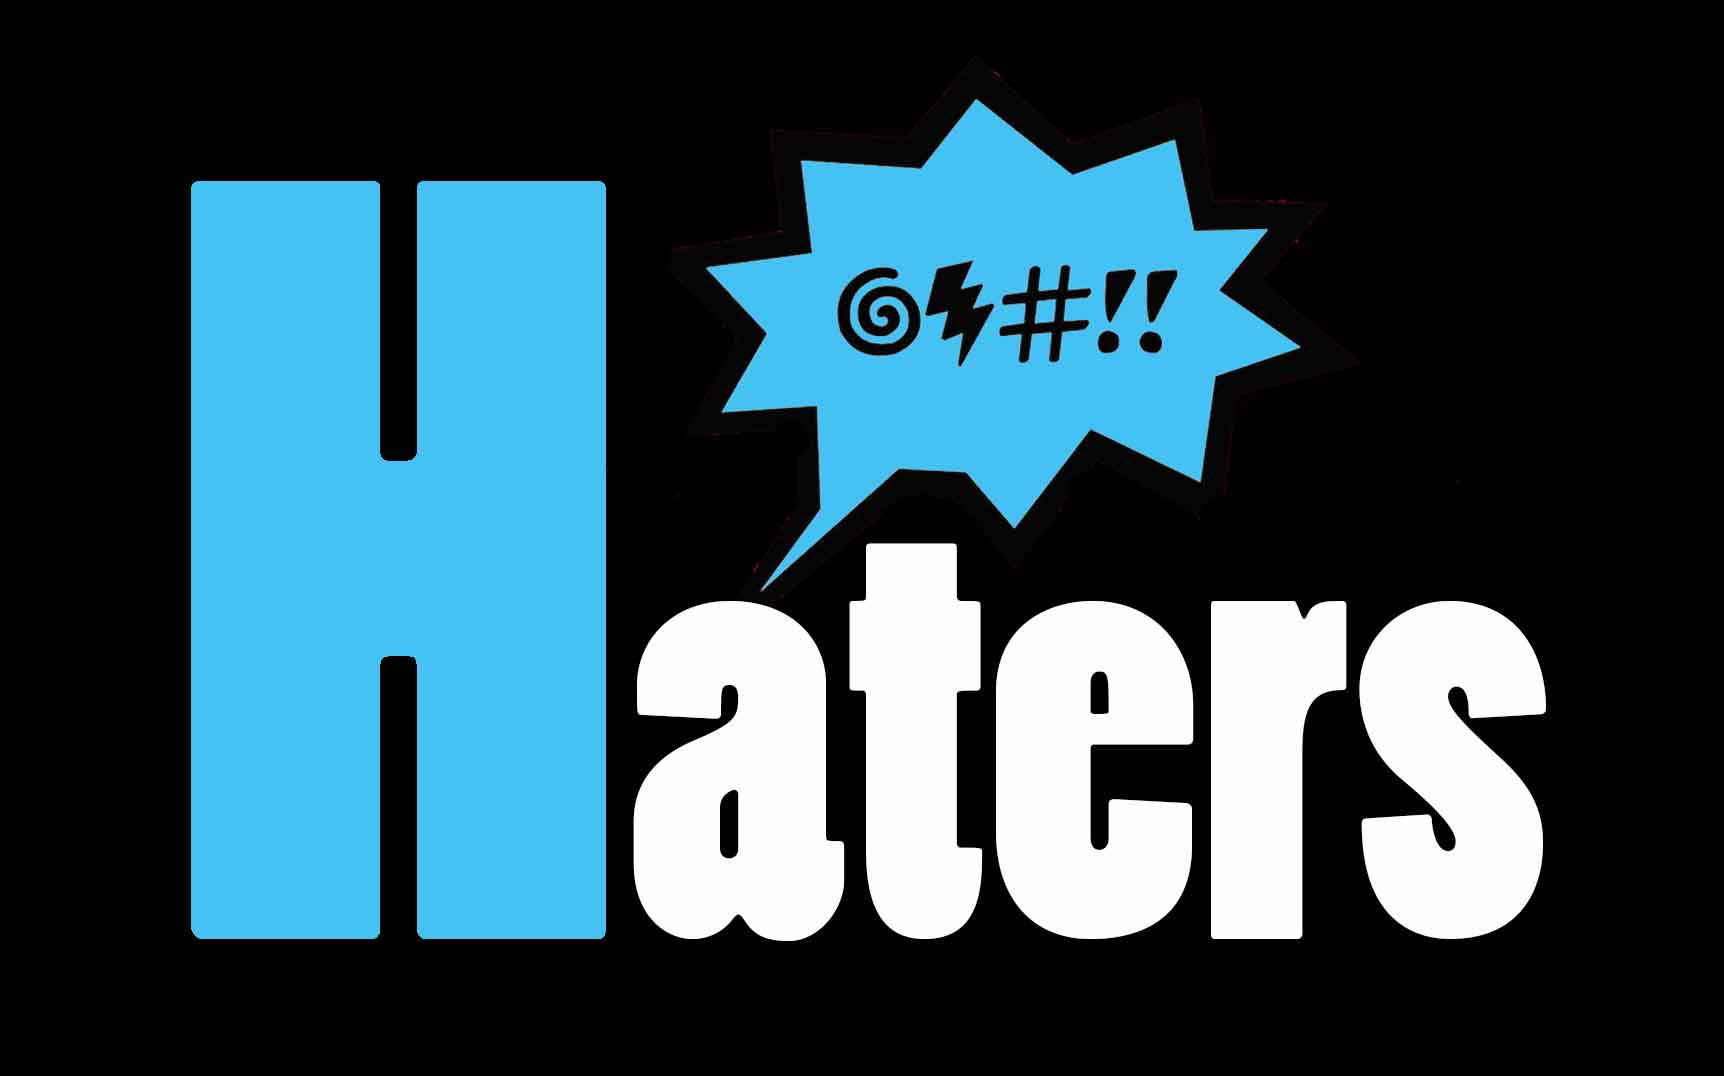 HATERS logo